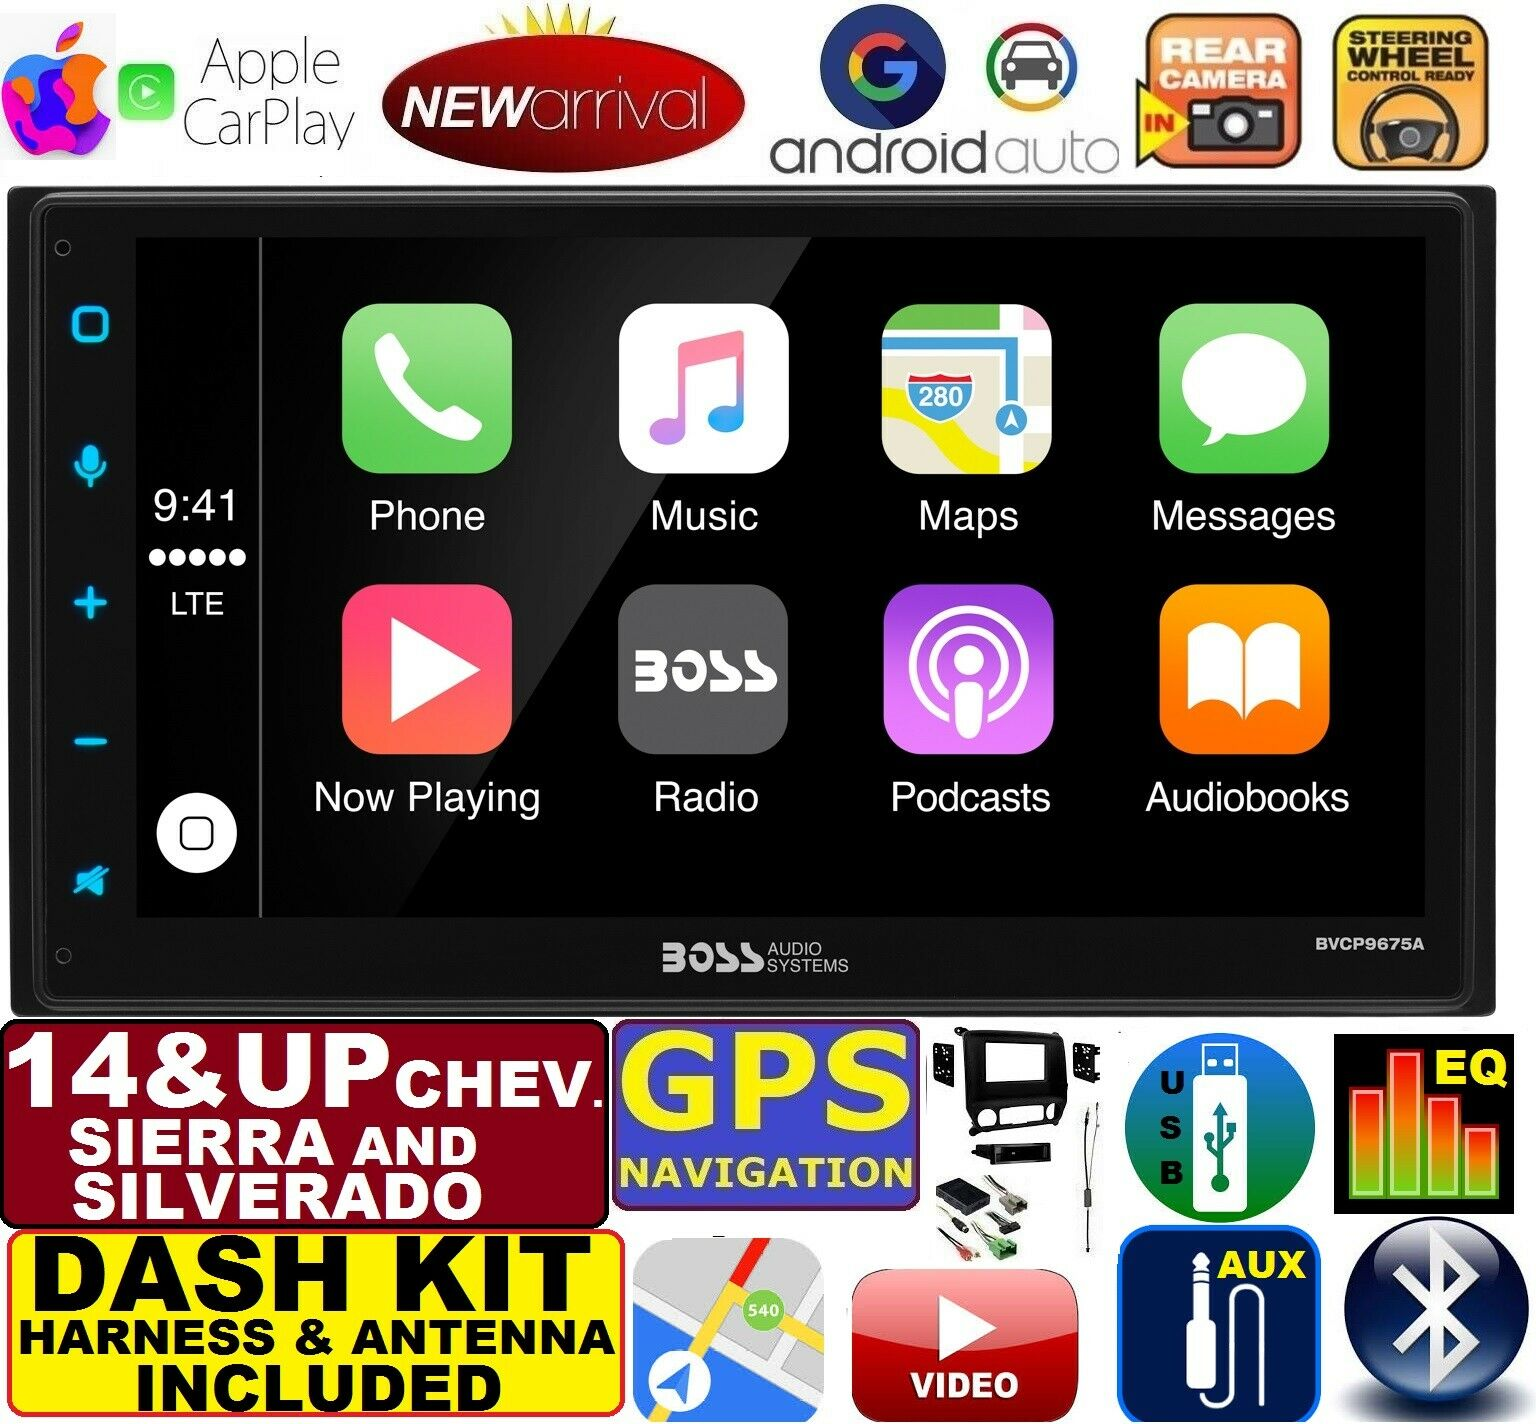 2014 & UP SILVERADO / SIERRA ANDROID AUTO APPLE CARPLAY NAVIGATION (works with IPHONE) USB/BLUETOOTH CAR RADIO STEREO PKG.  INCL. VEHICLE INSTALLATION, DASH KIT, WIRE HARNESS, AND ANTENNA ADAPTER